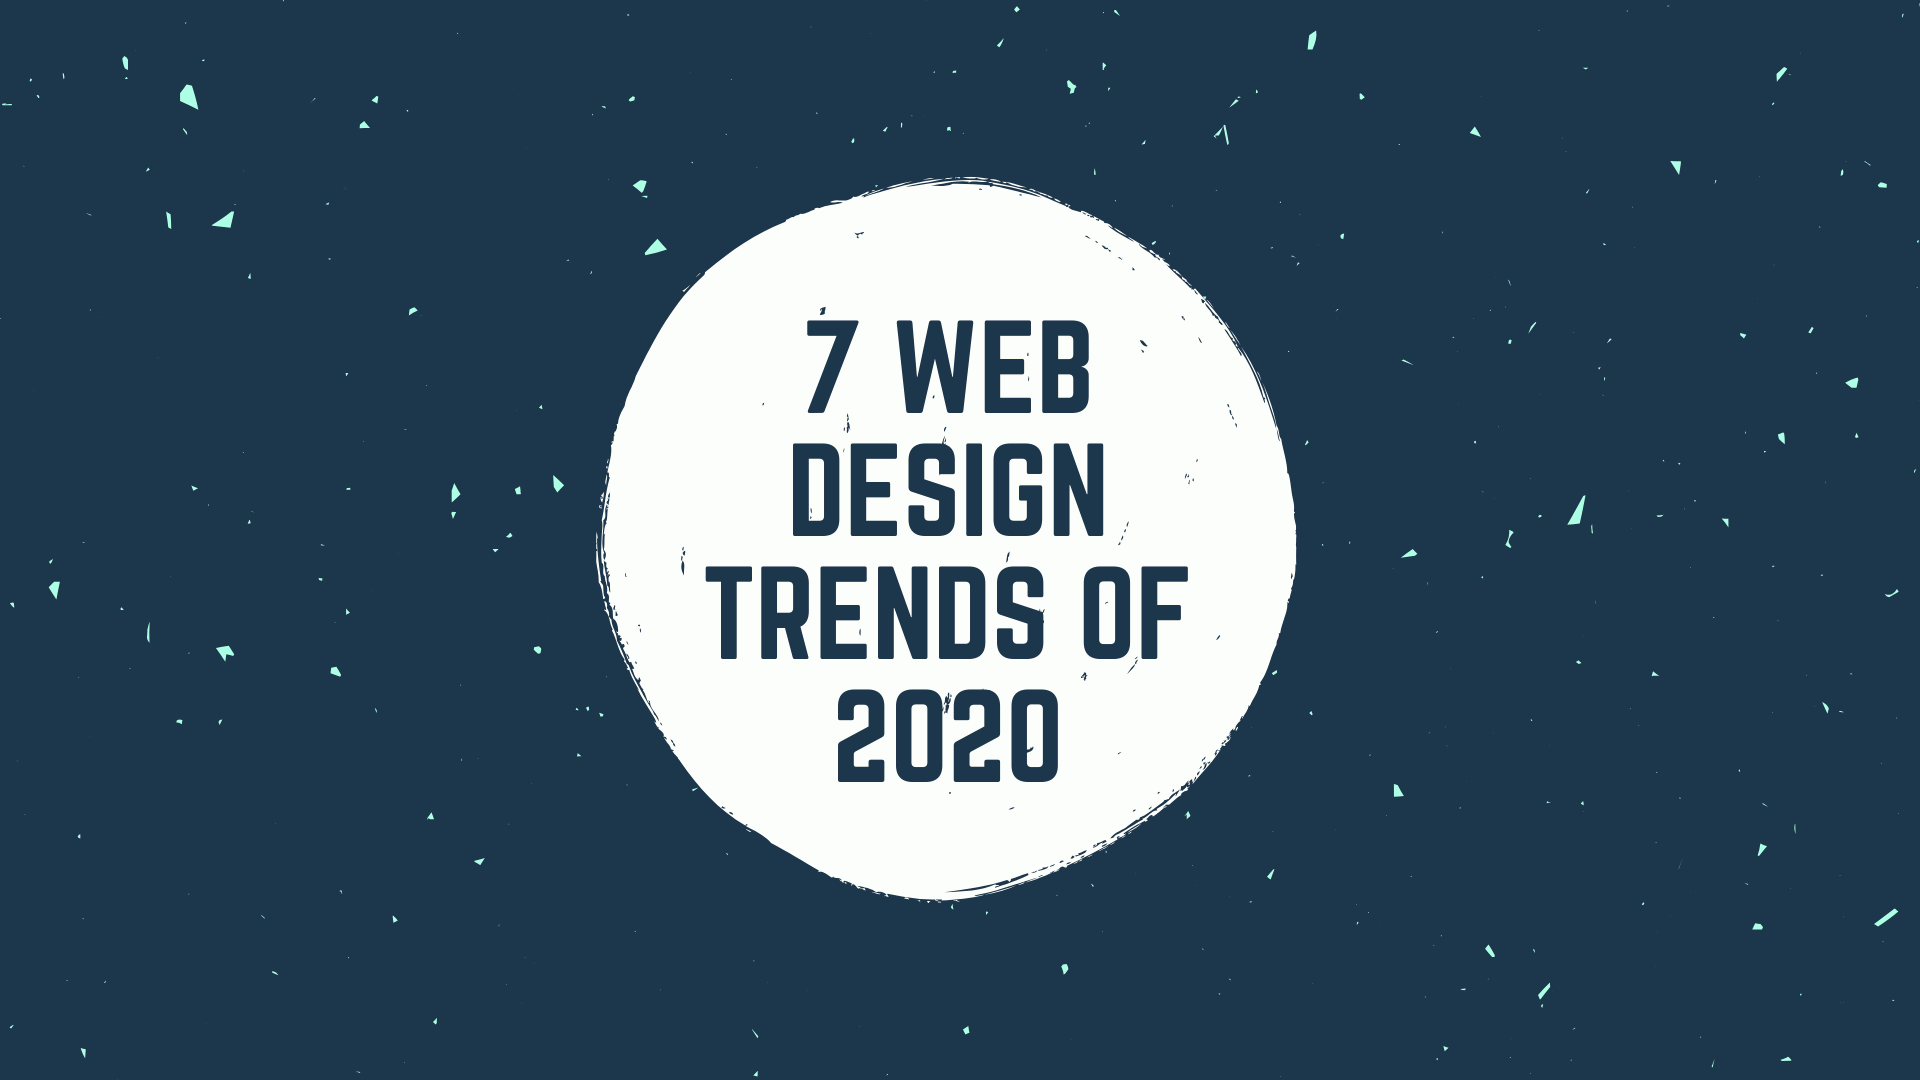 7 web design trends of 2020